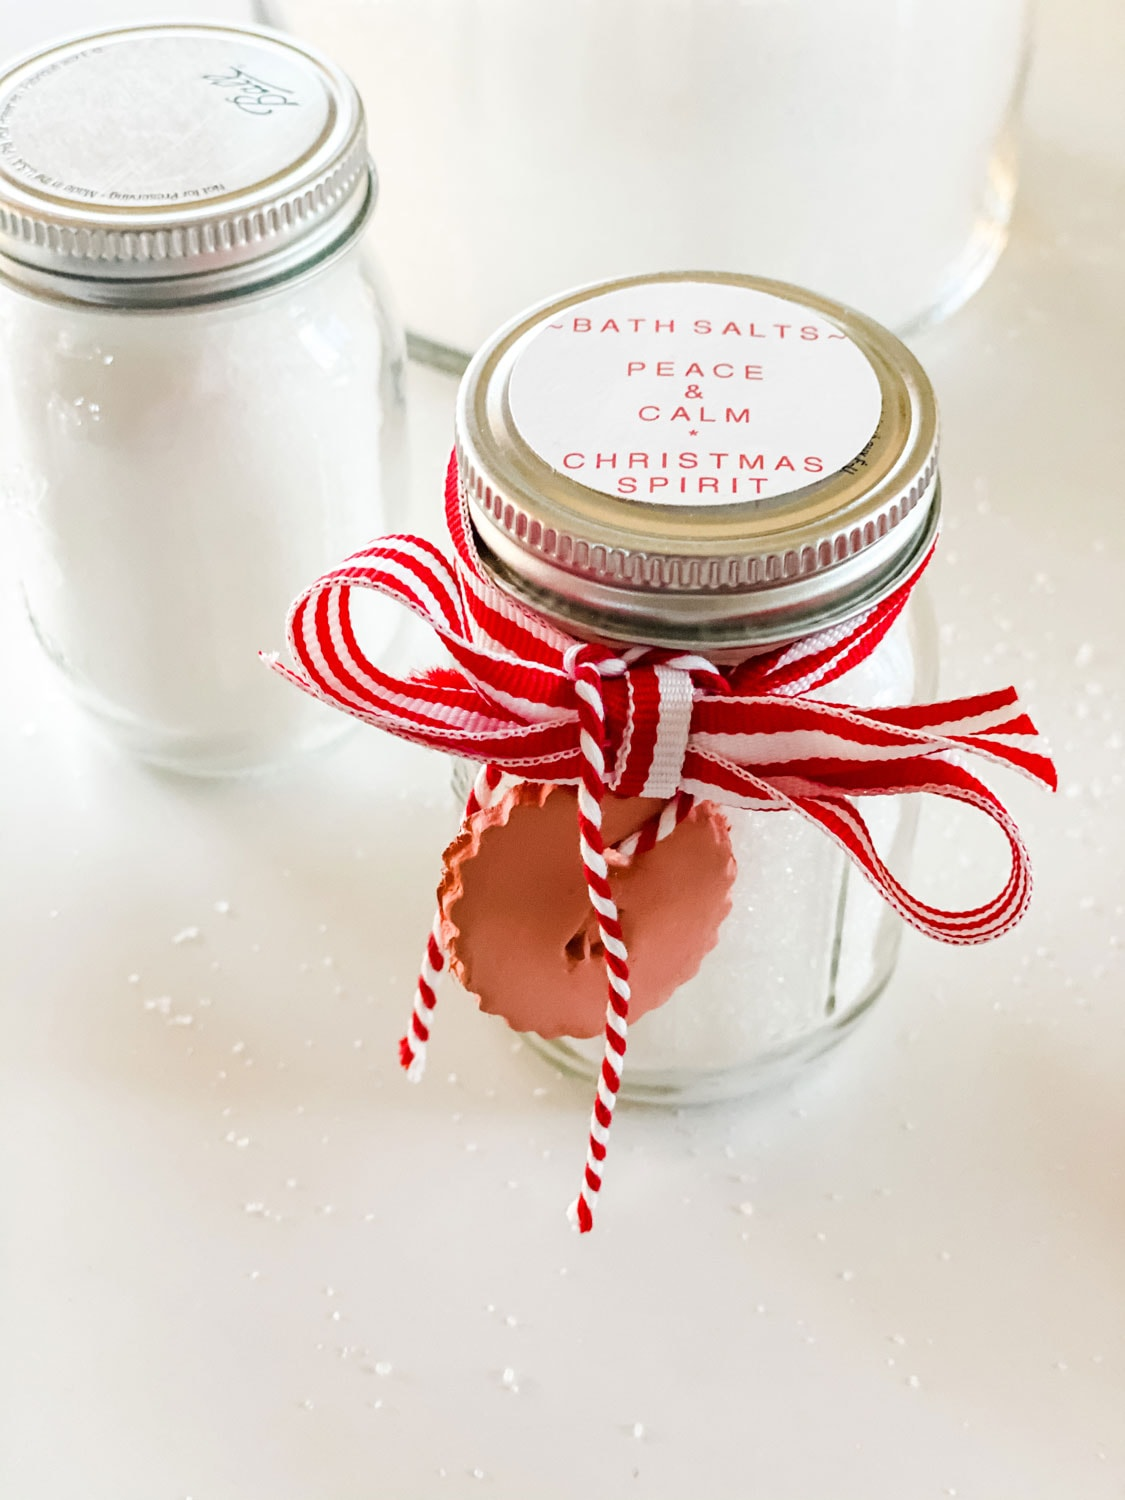 mini mason jar with bath salts and red and white ribbon